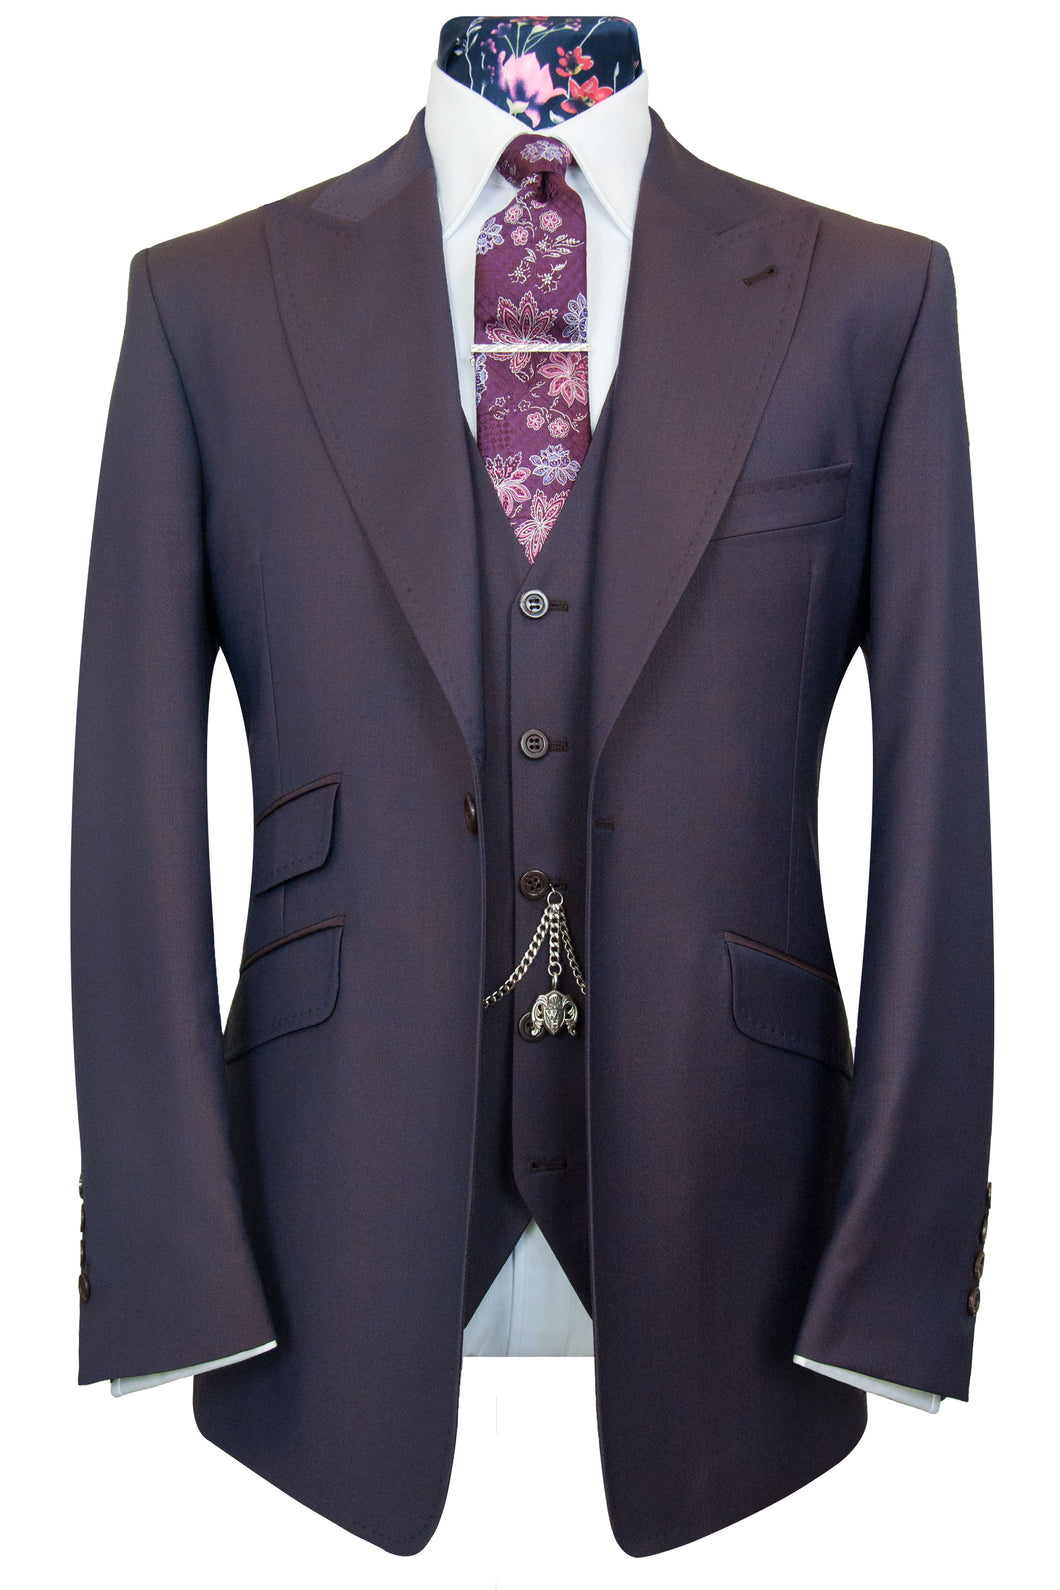 The Mountney Aubergine Shot Chevron Weave Suit